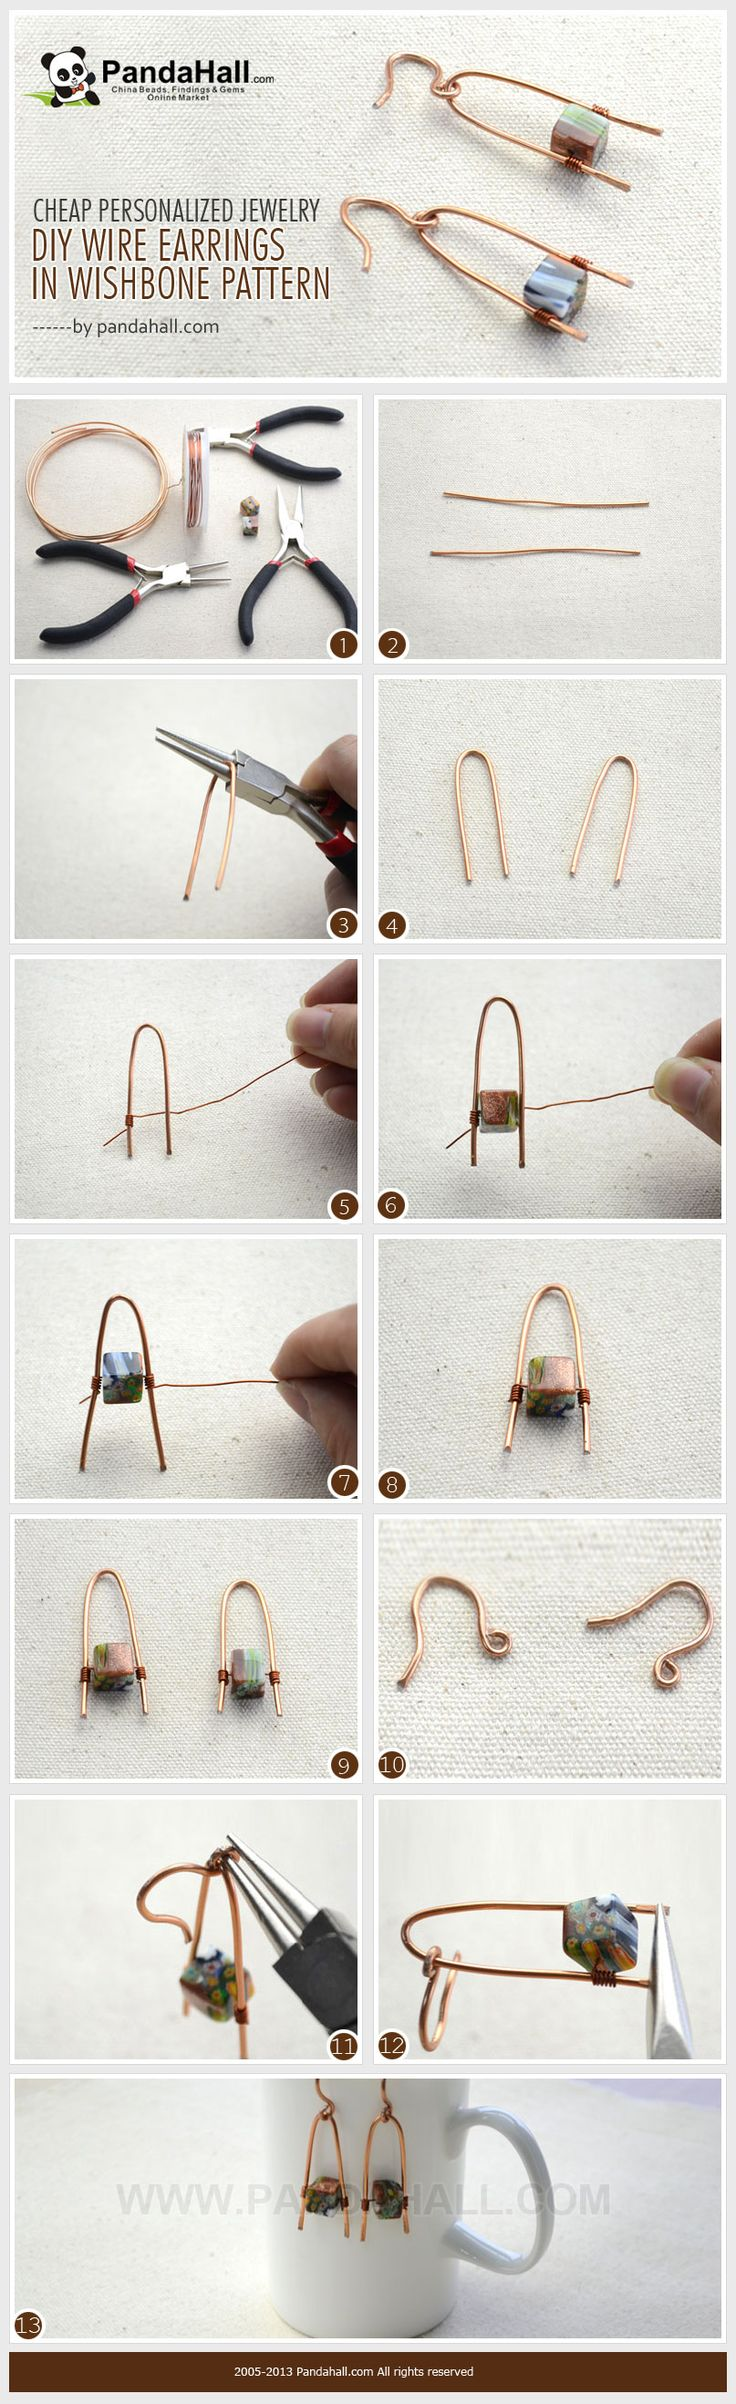 Cheap Personalized Jewelry- DIY Wire Wishbone Pattern Earrings from pandahall.com